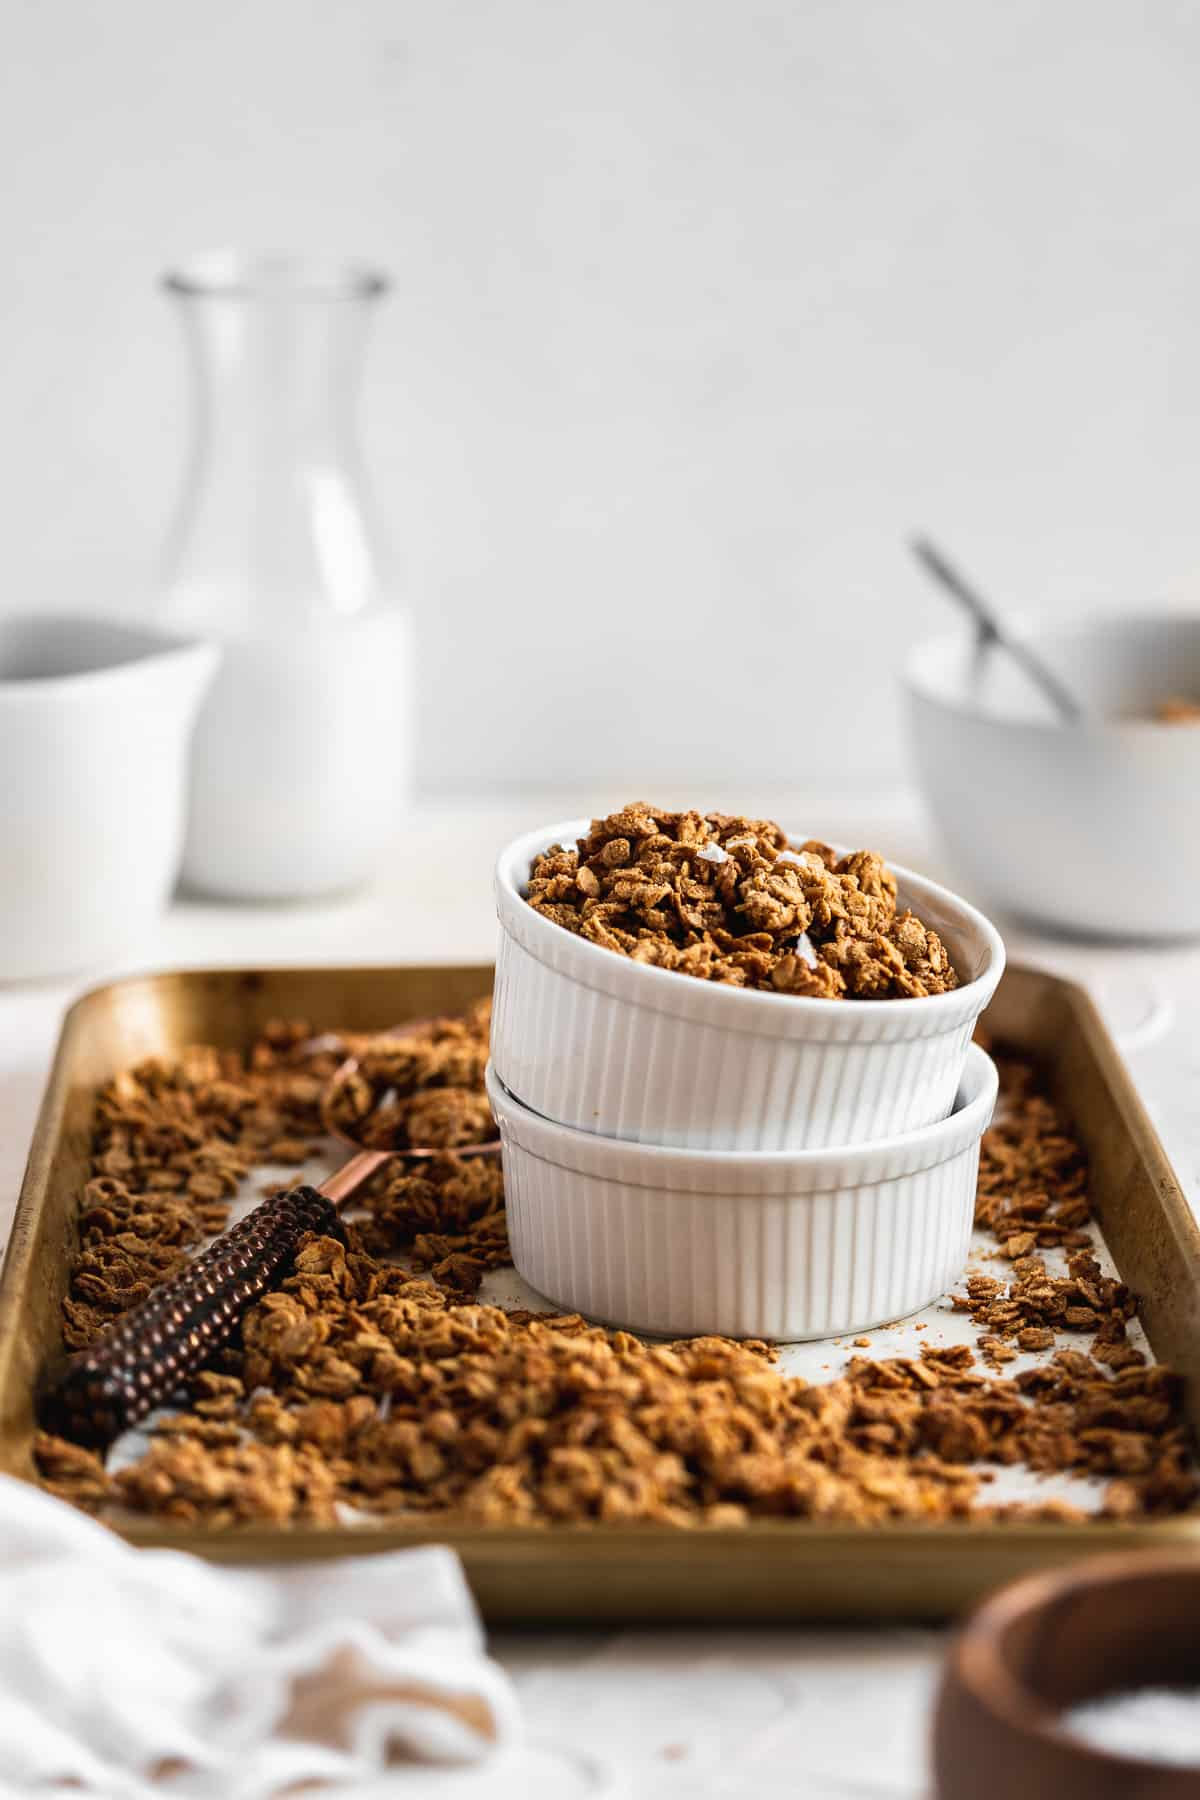 Side view photo of a baking sheet filled with Maple Sea Salt Nut-free Granola.  Two ramekins are stacked and sitting in the middle of the baking sheet.  A serving spoon has filled the ramekin with granola and sits nearby.  A glass of milk is in the background.